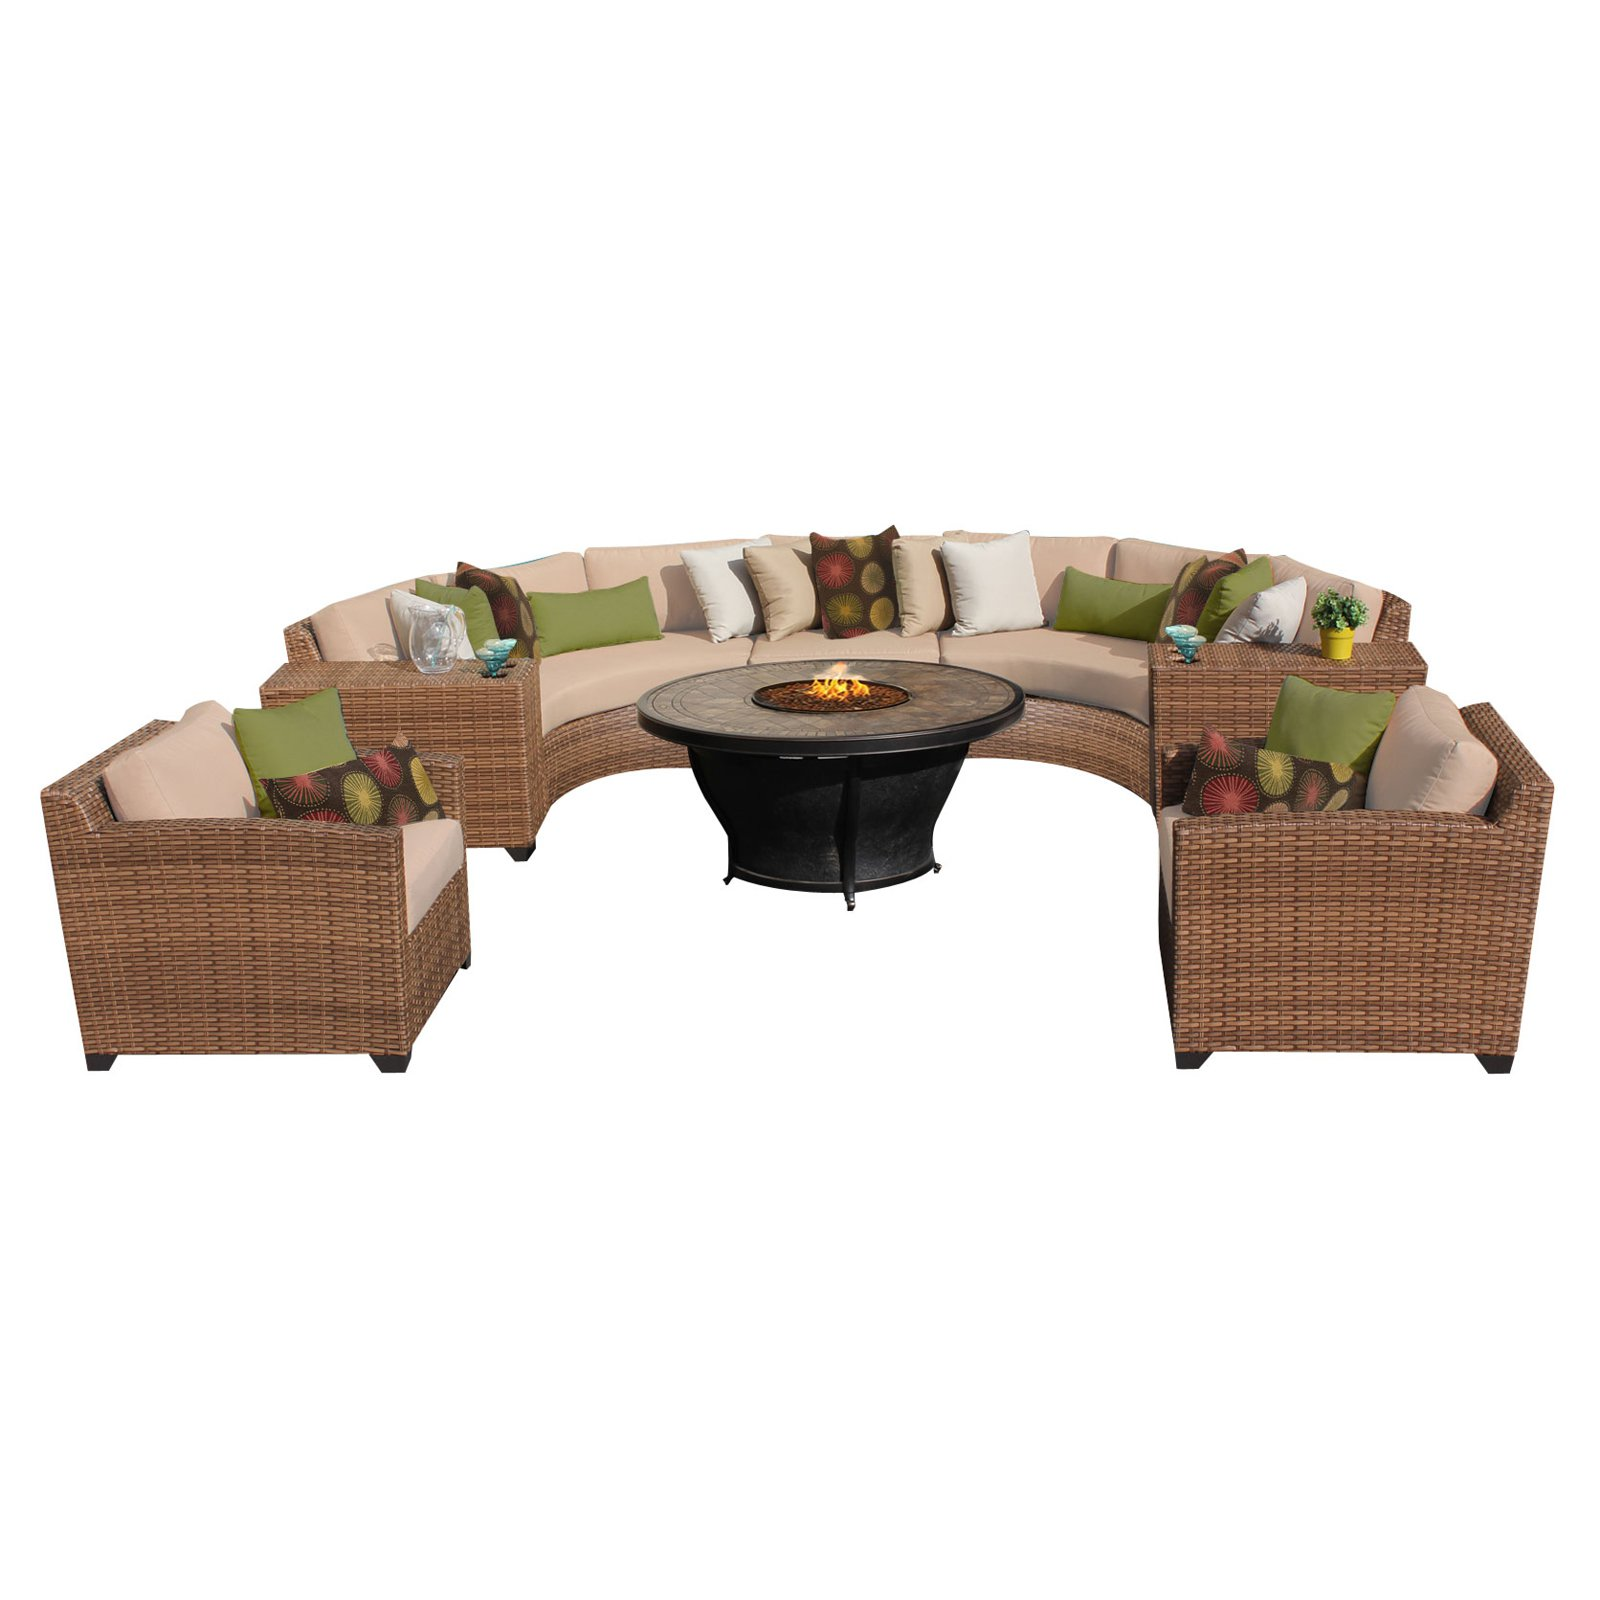 TK Classics Laguna Wicker 8 Piece Patio Conversation Set with Fire Pit Table and 2 Sets of Cushion Covers